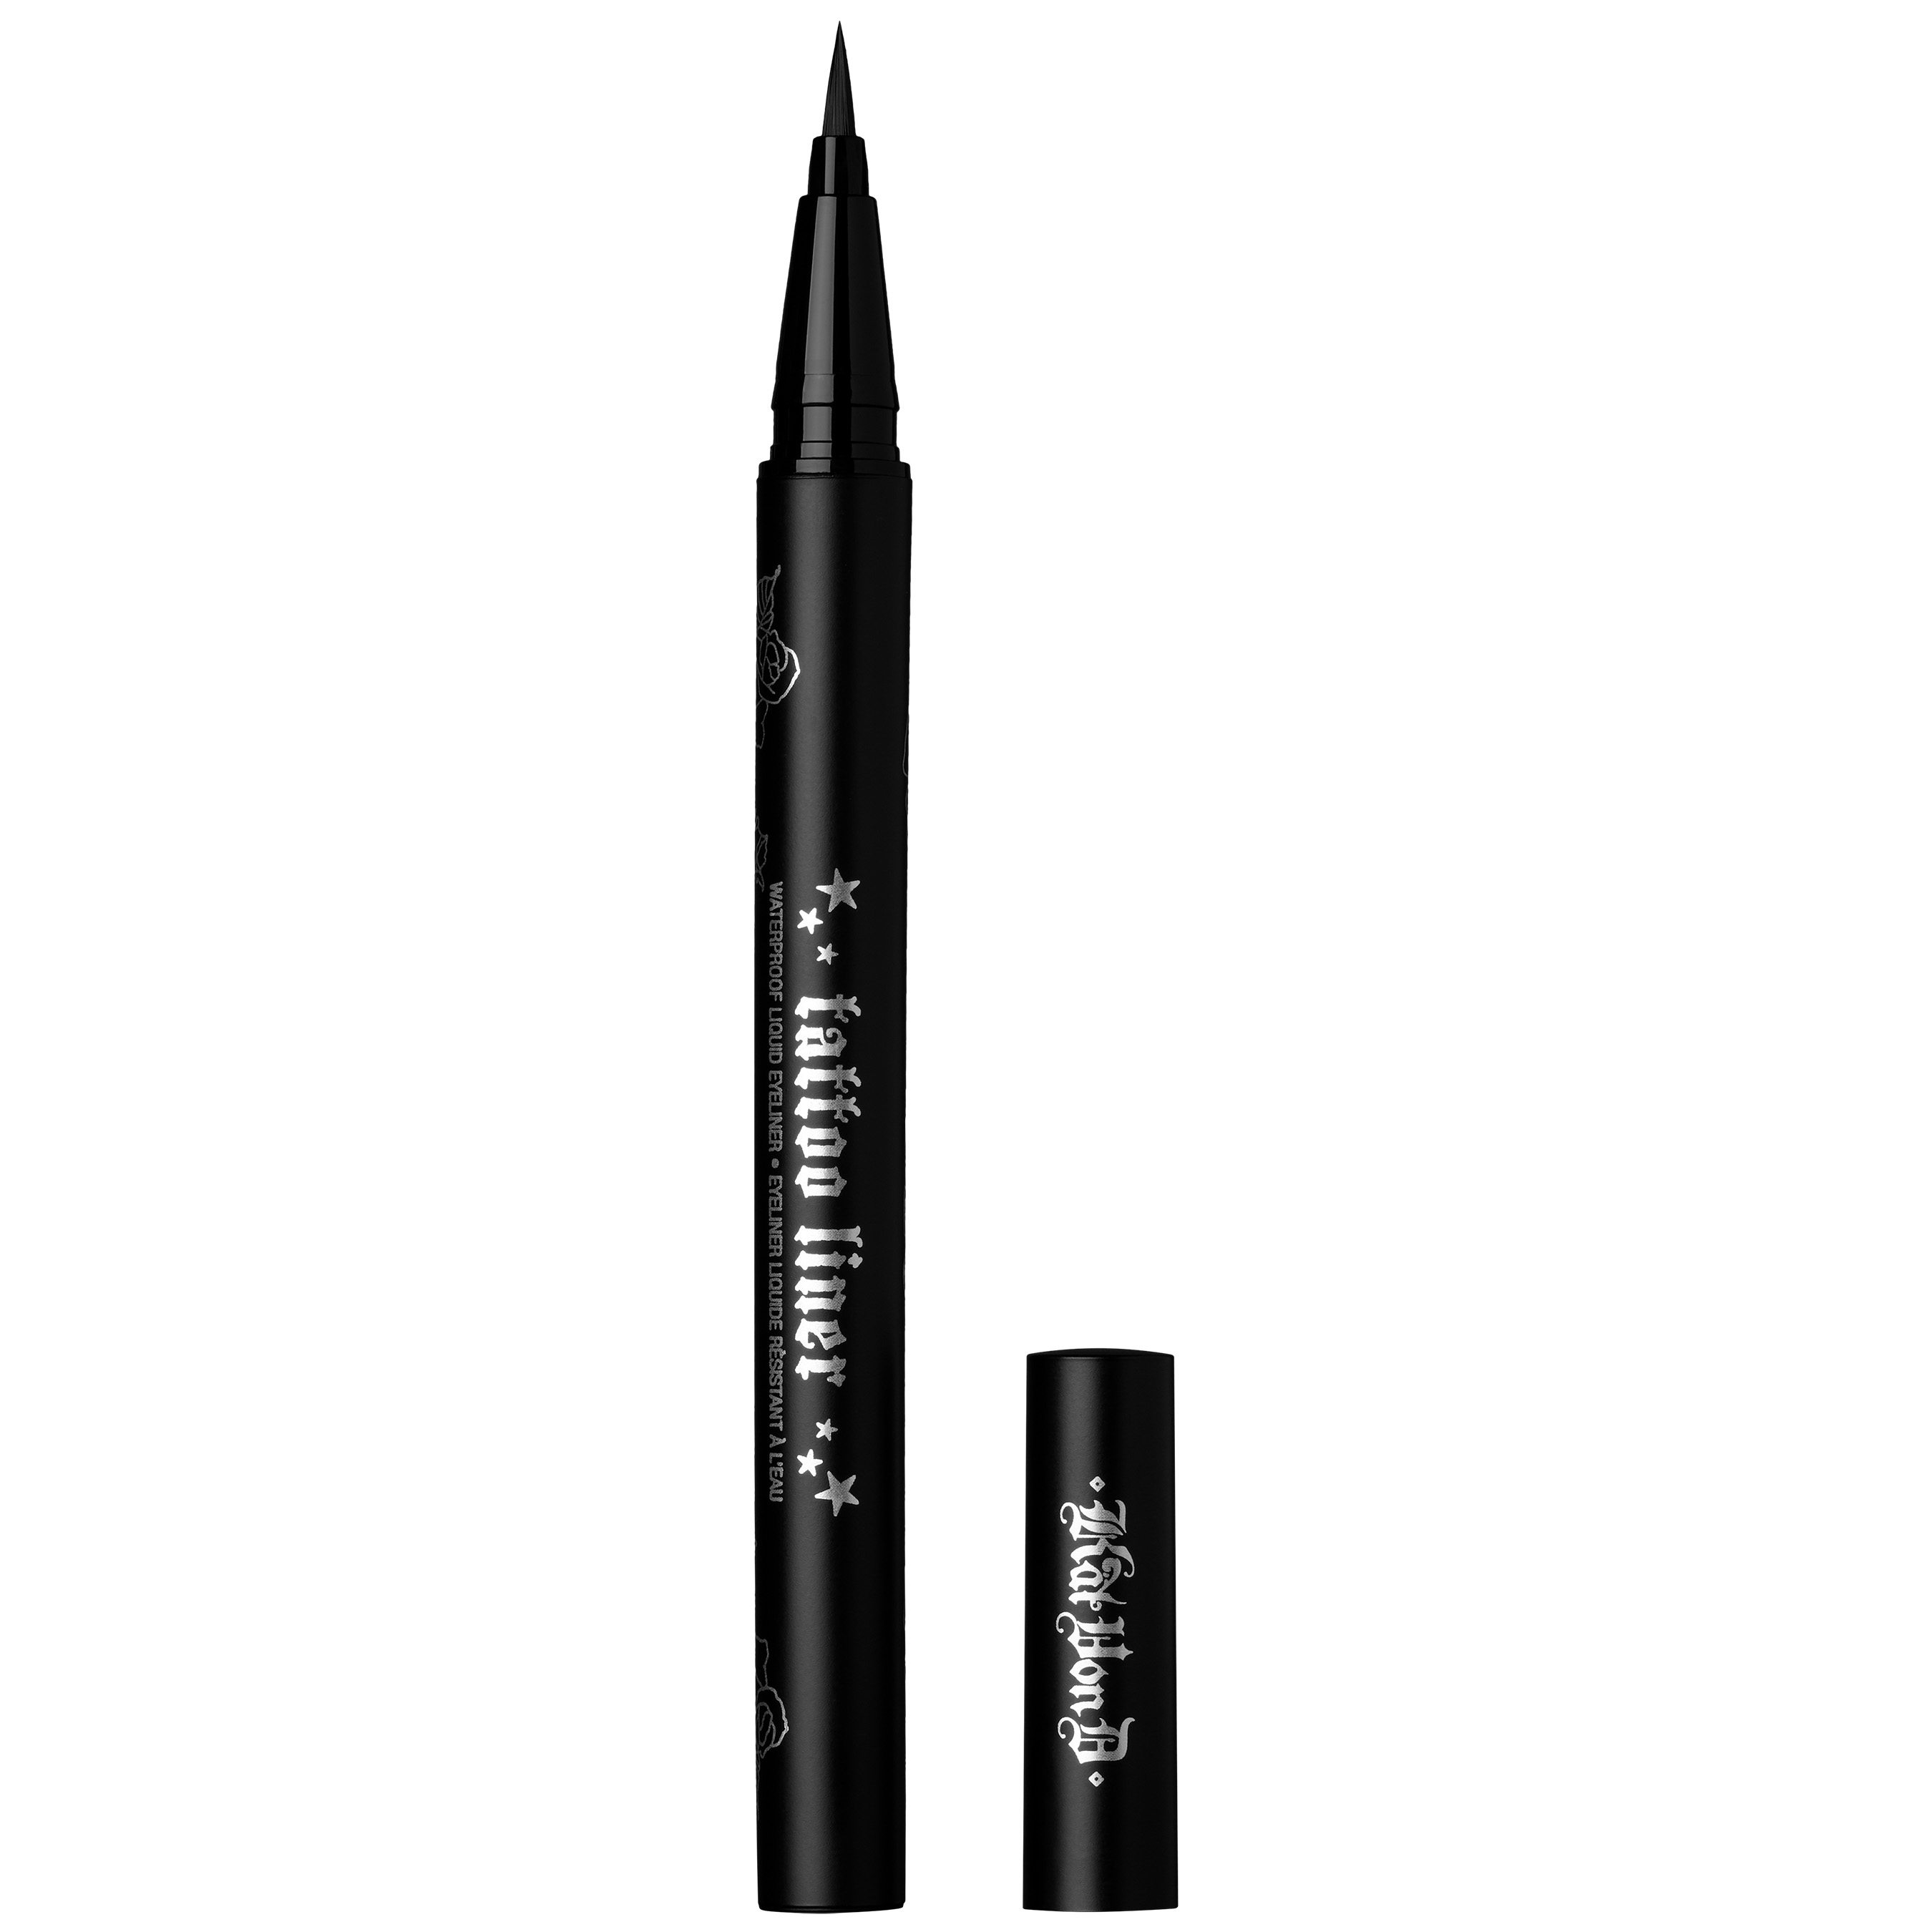 Kat Von D Beauty's best-selling and award winning Tattoo Liner in Trooper Black is featured in the 2019 Sephora Birthday Gift mini-set. Full size shown.